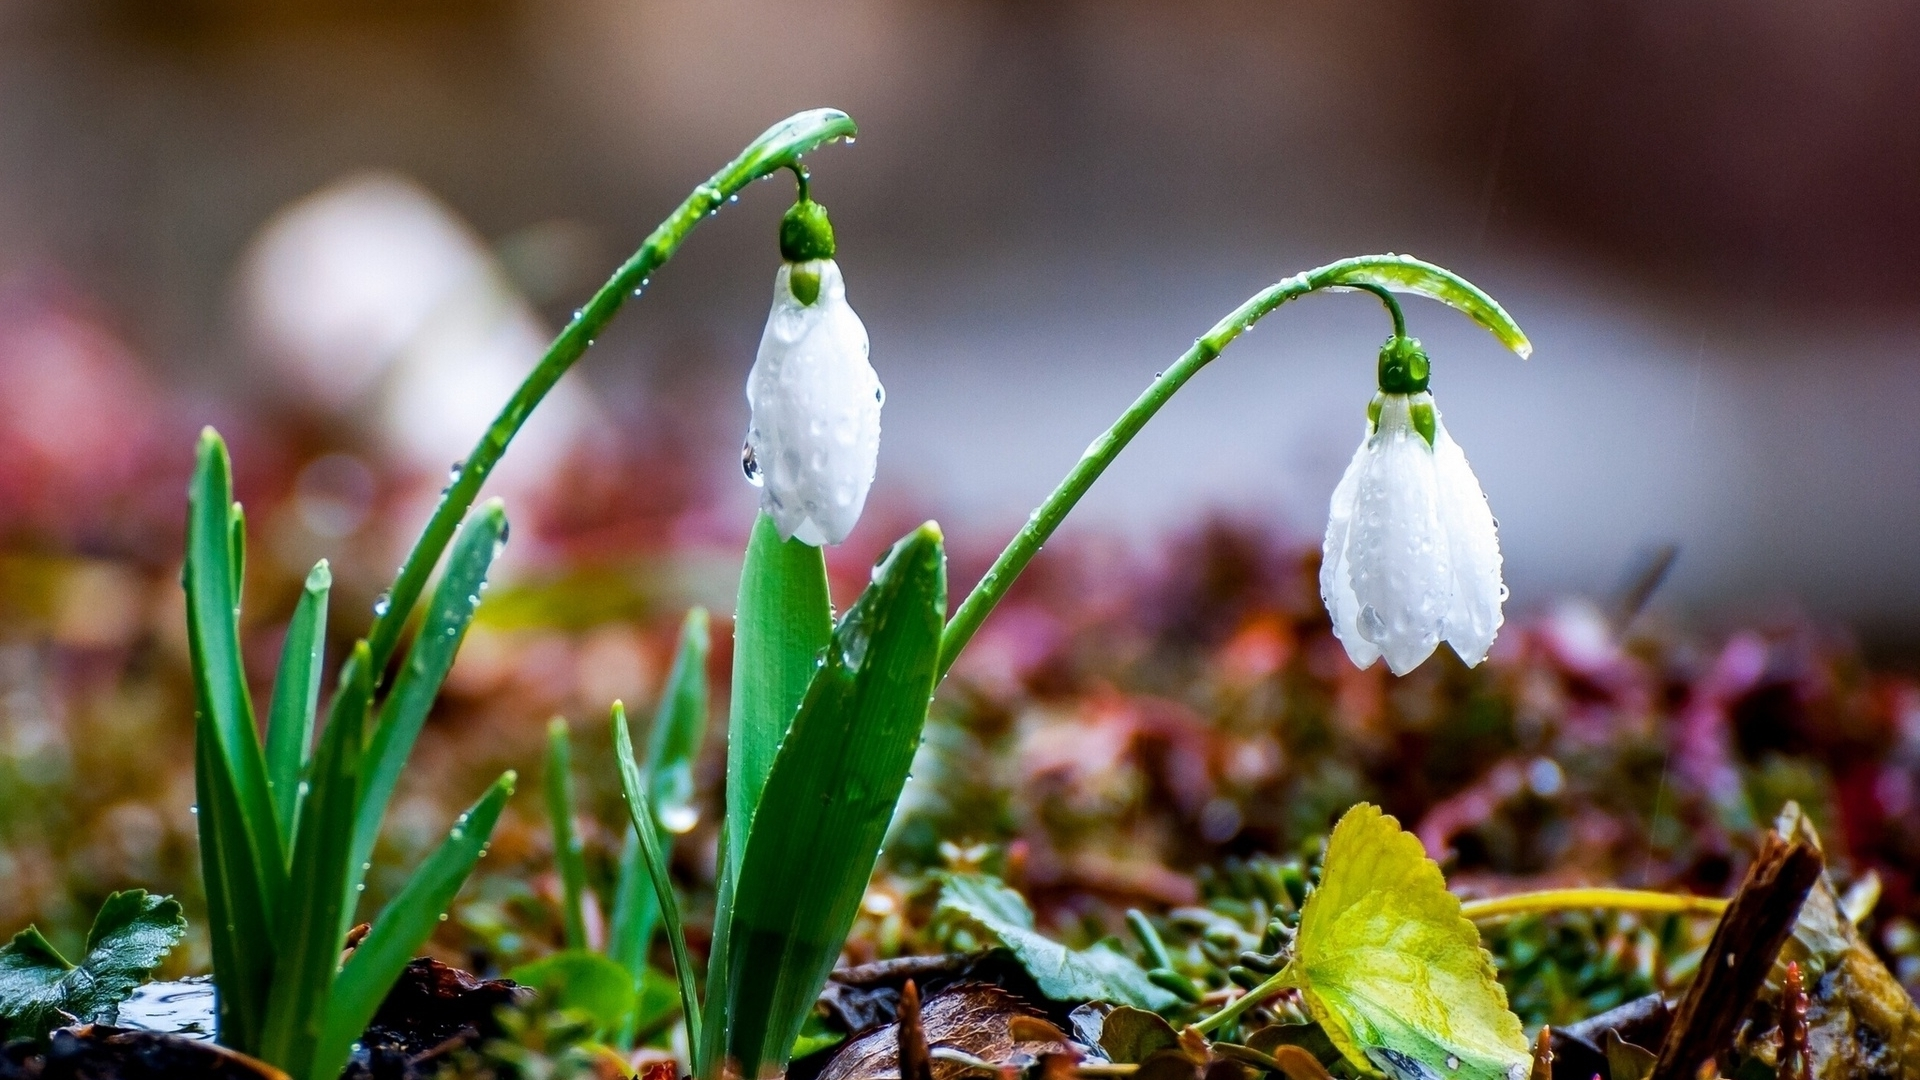 snowdrops wallpapers high quality download free